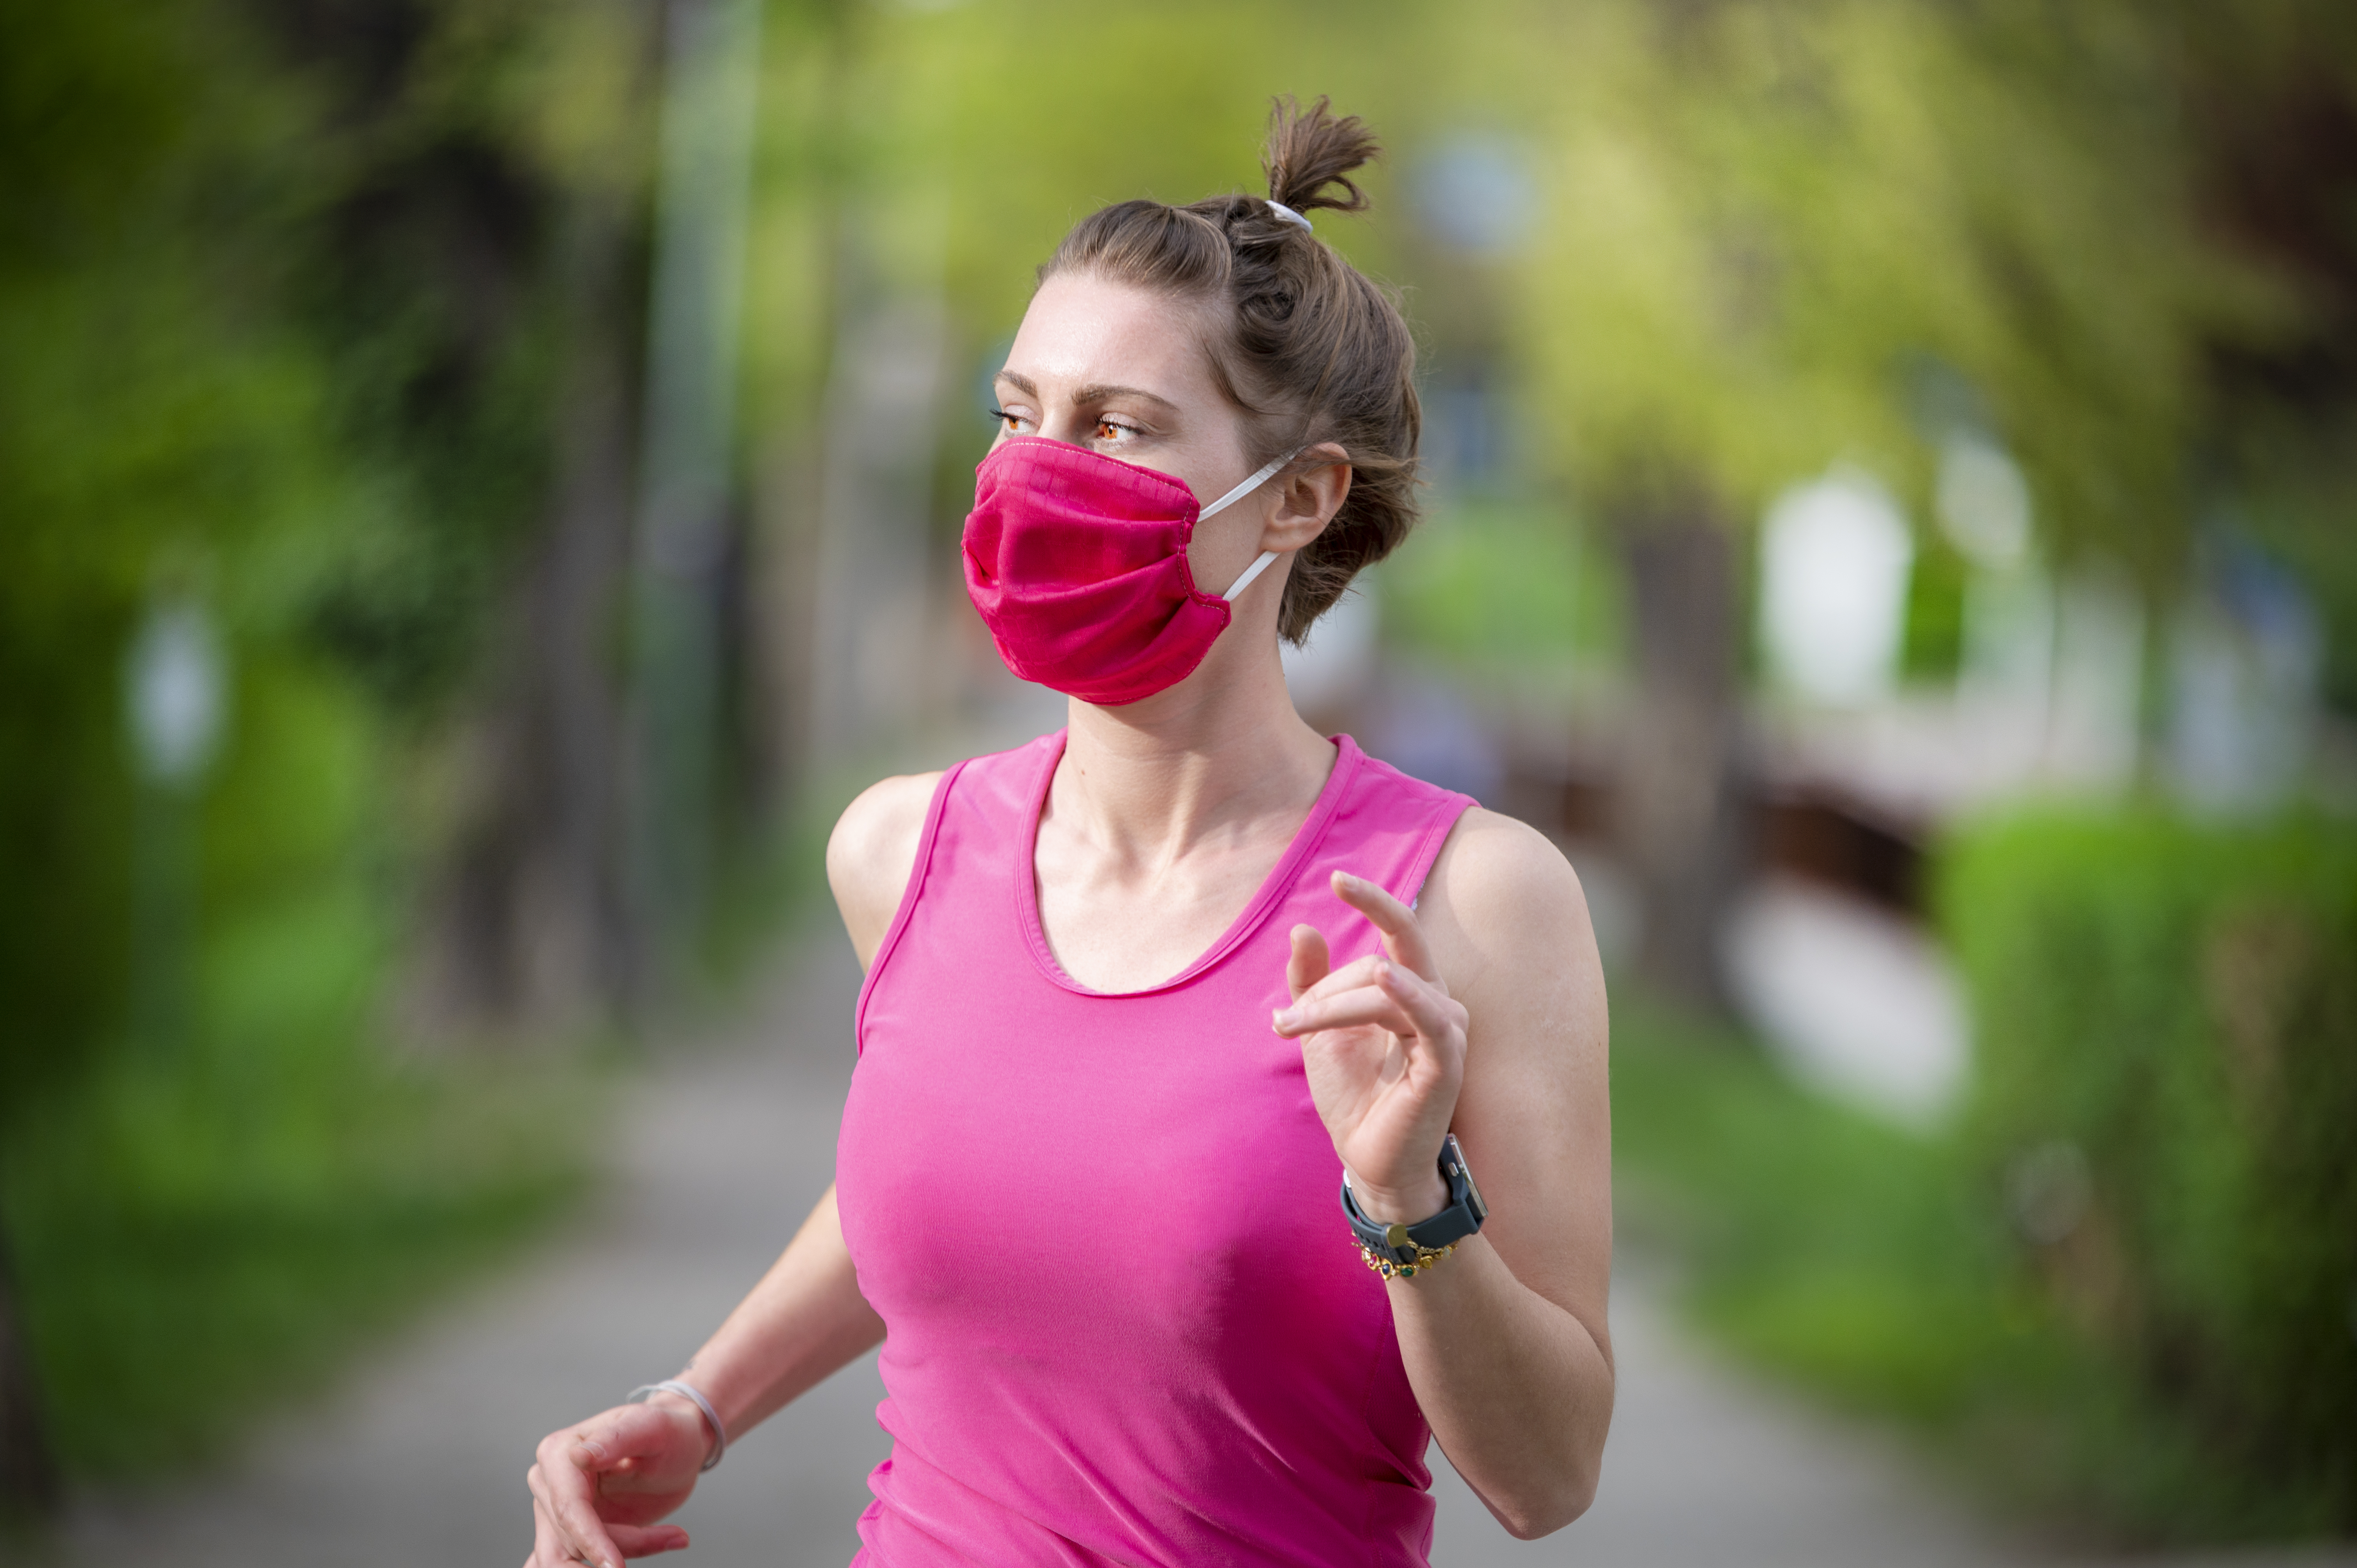 health safety market research face mask jogging